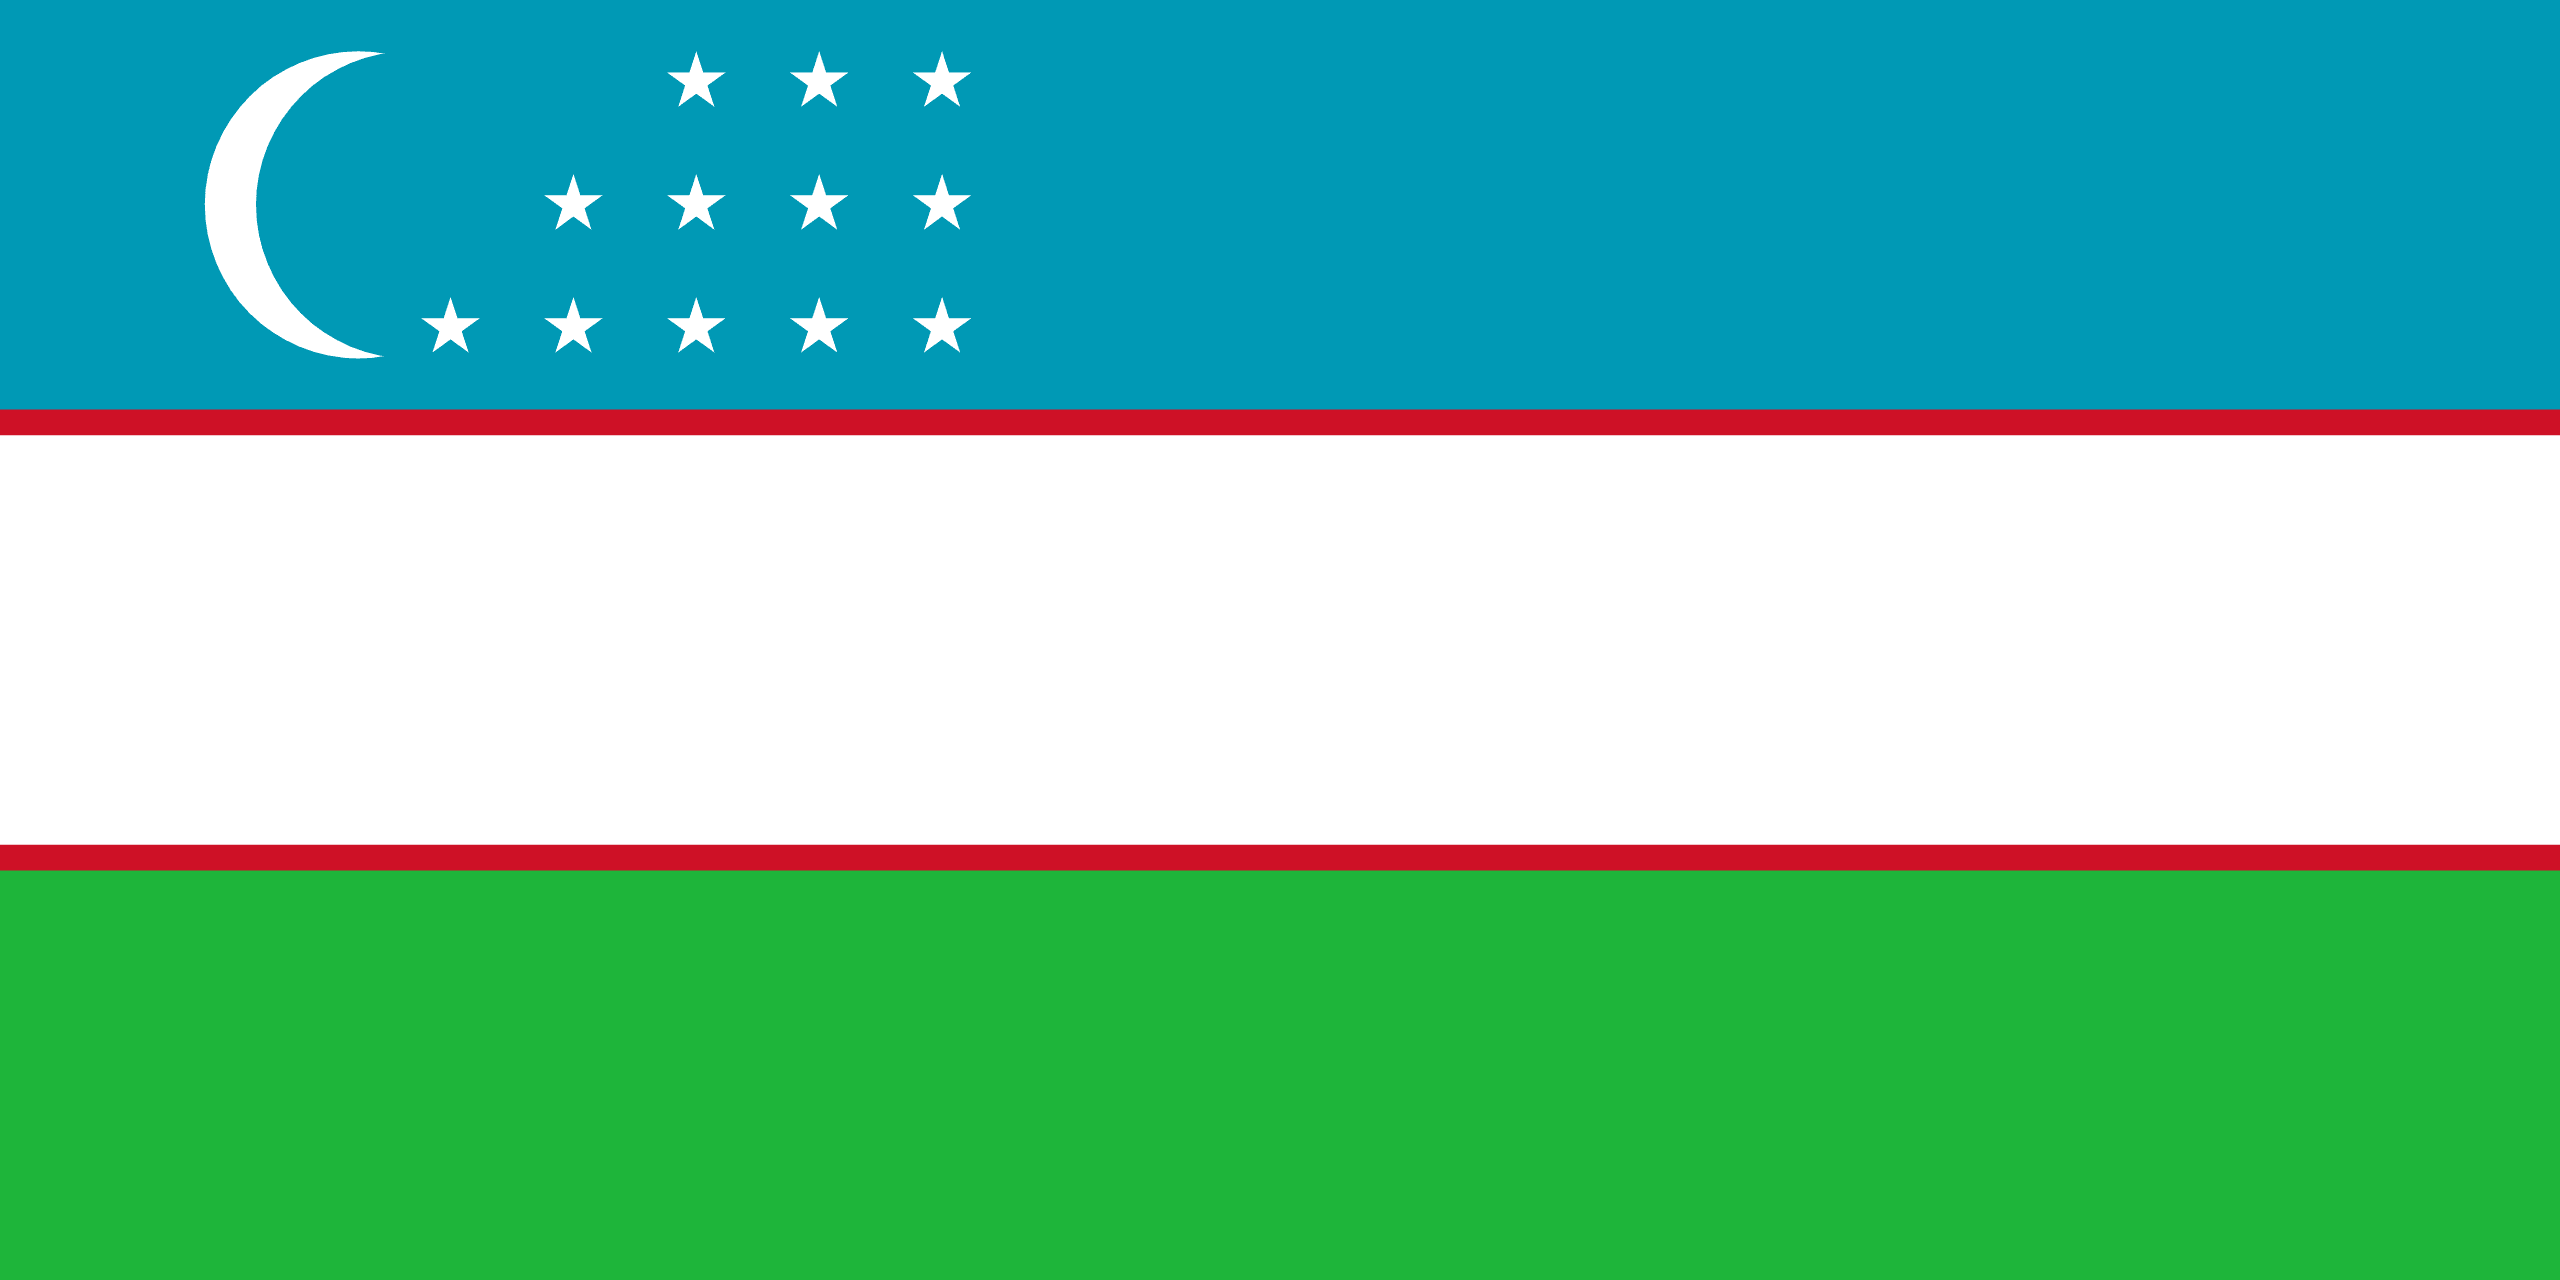 Uzbekistan flags of countries download a flag or use it on websites buycottarizona